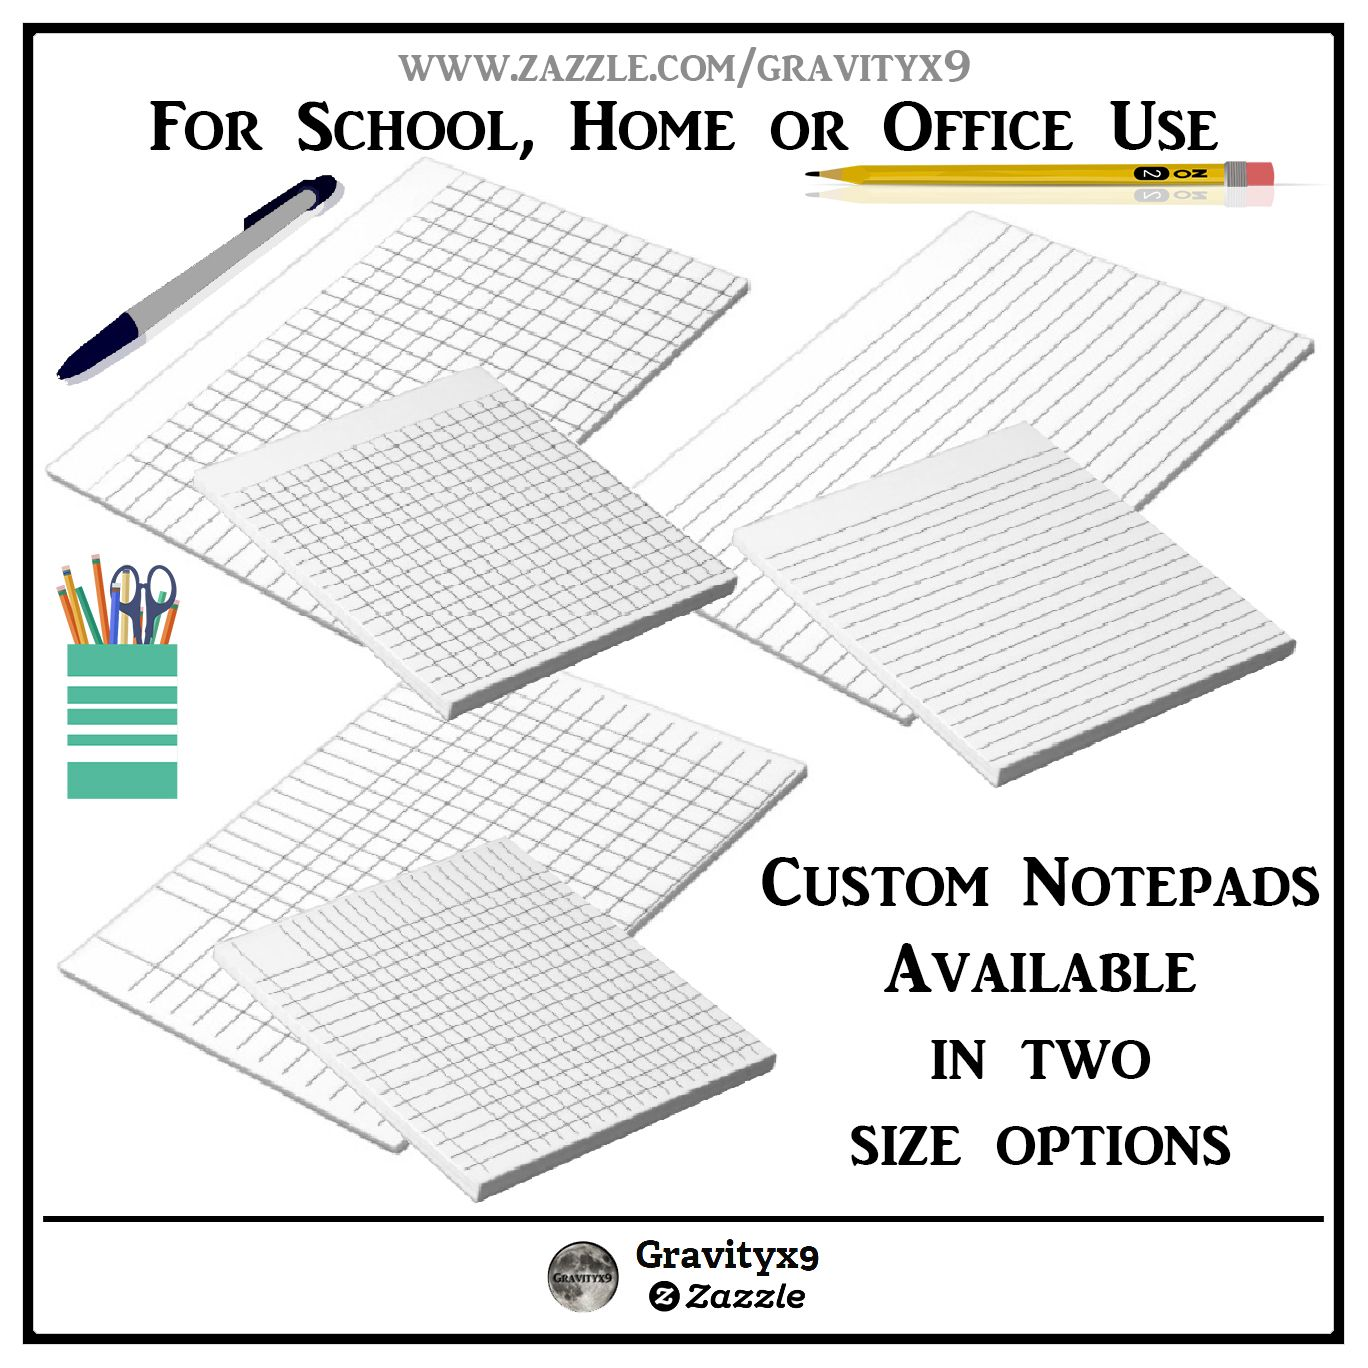 lined guides and graph paper notepads by gravityx9 at zazzle lined